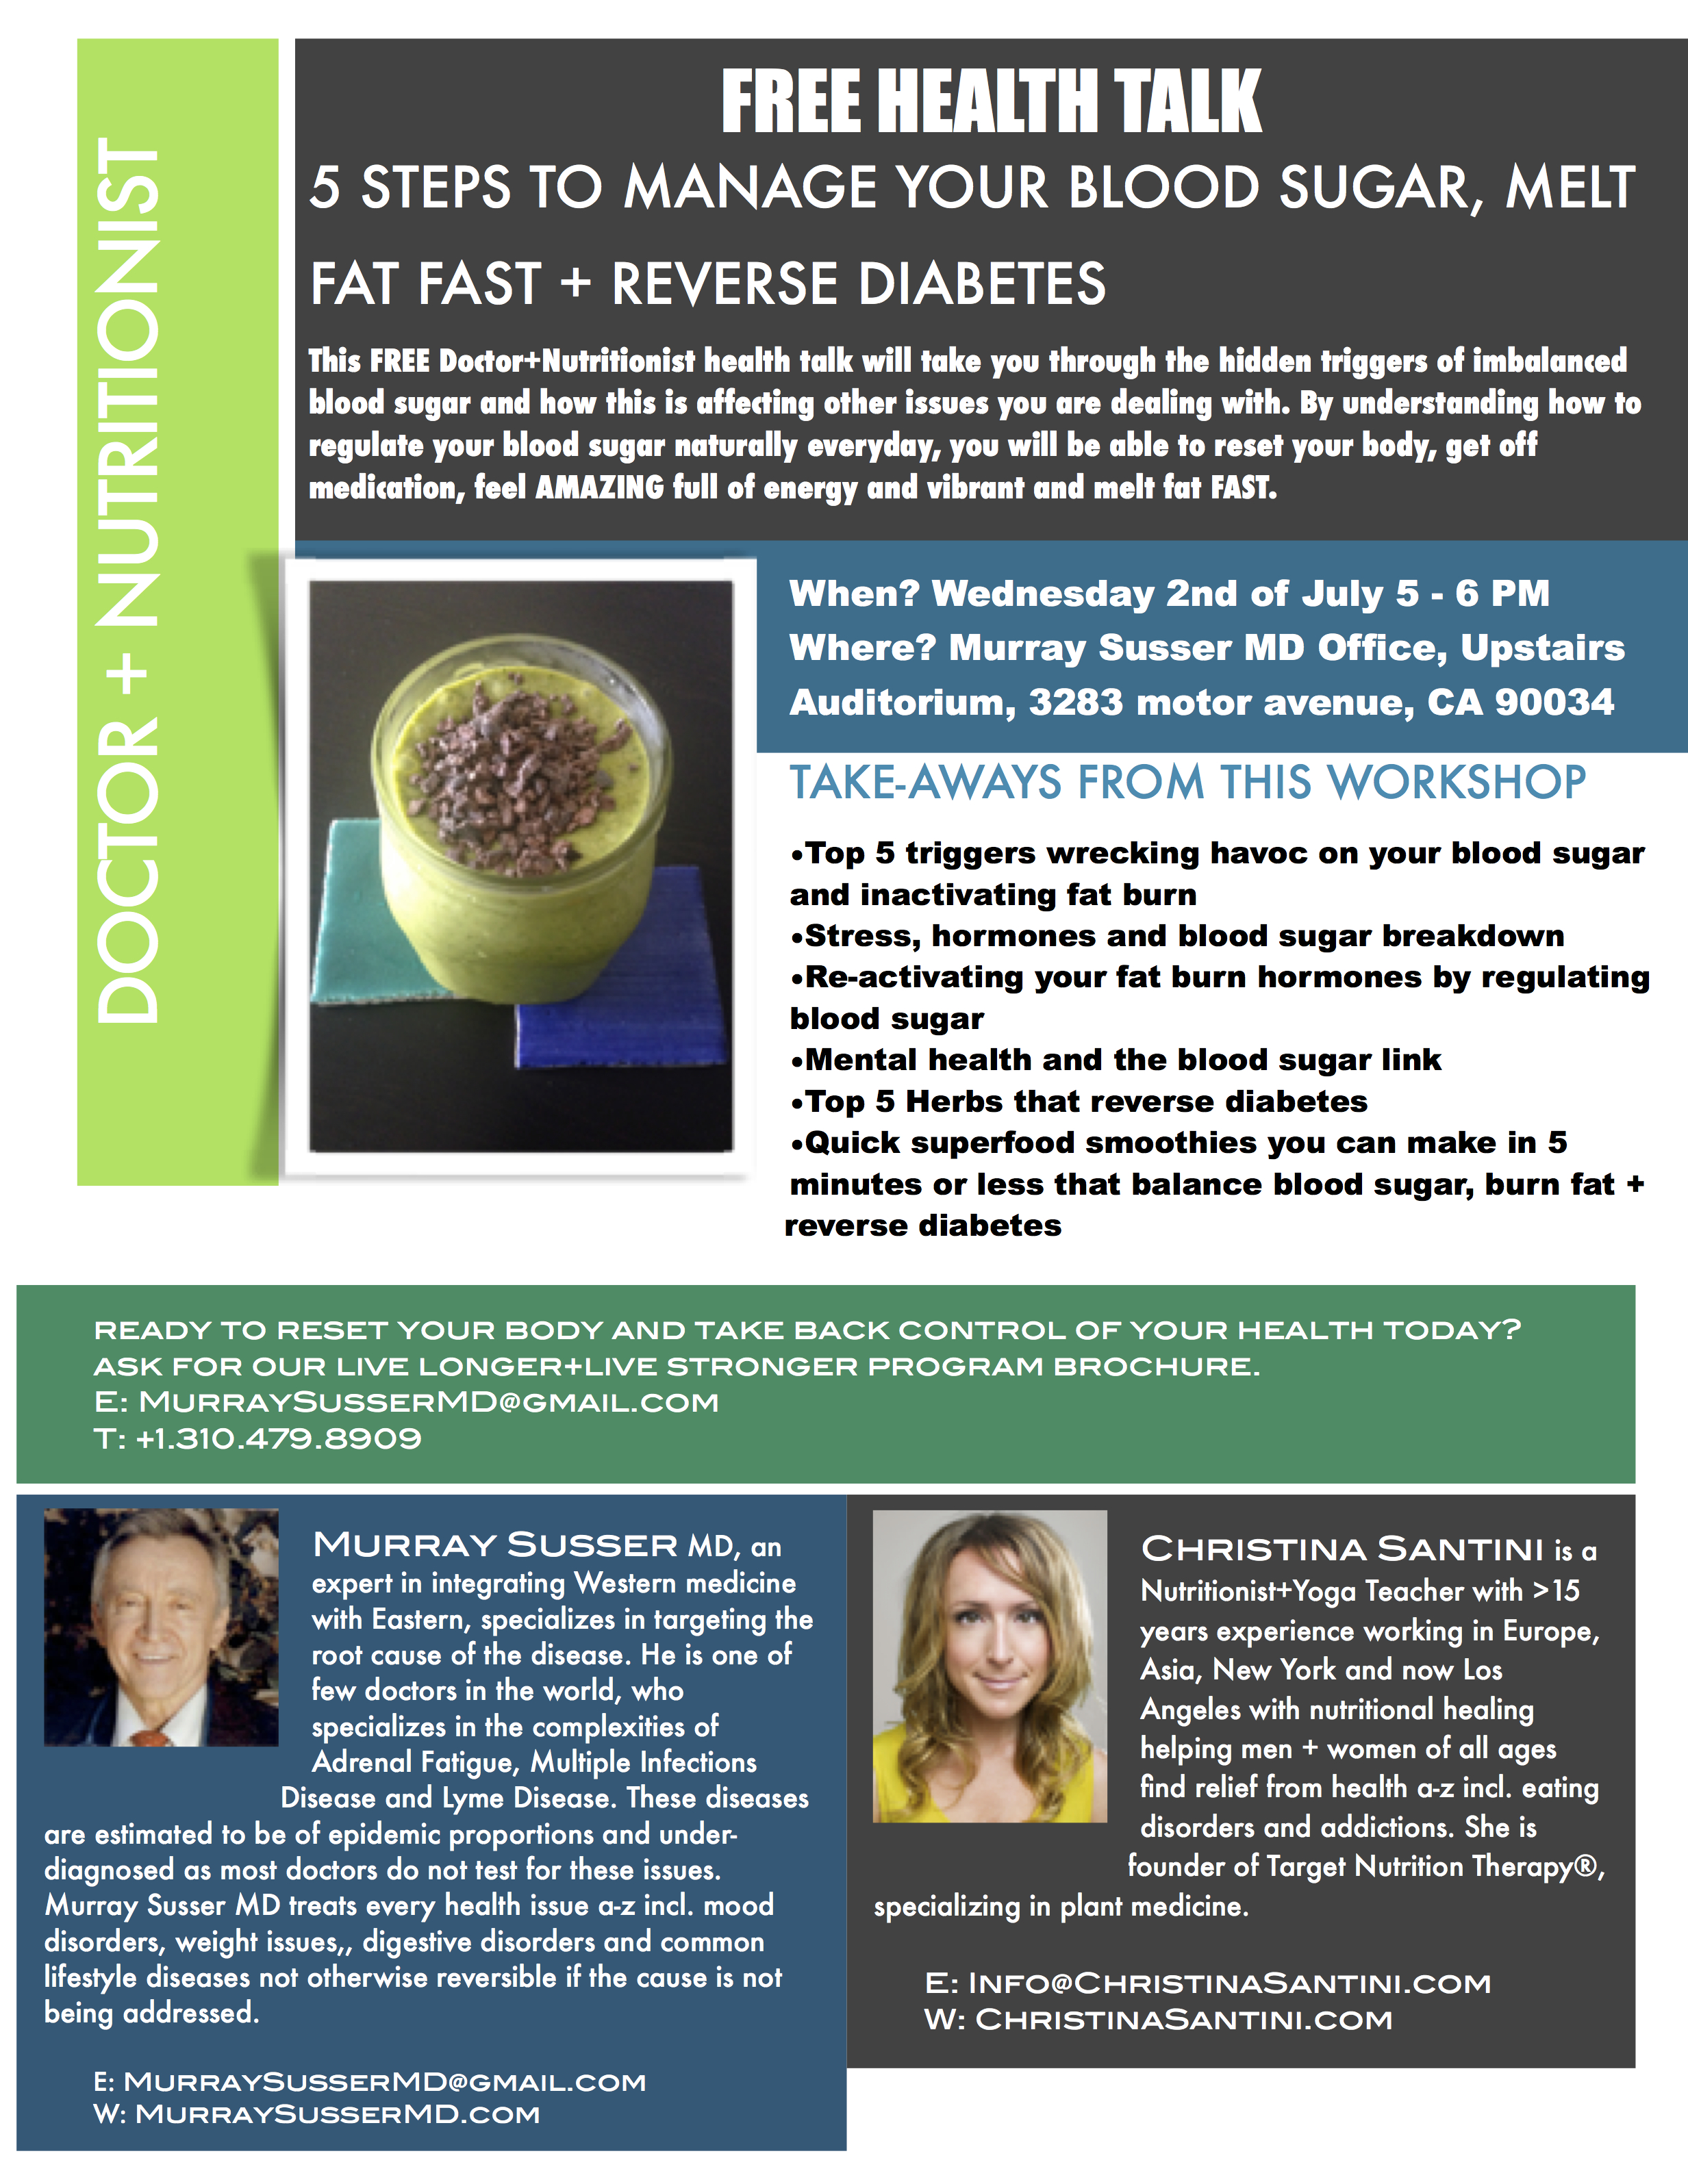 manage your blood sugar free health talk